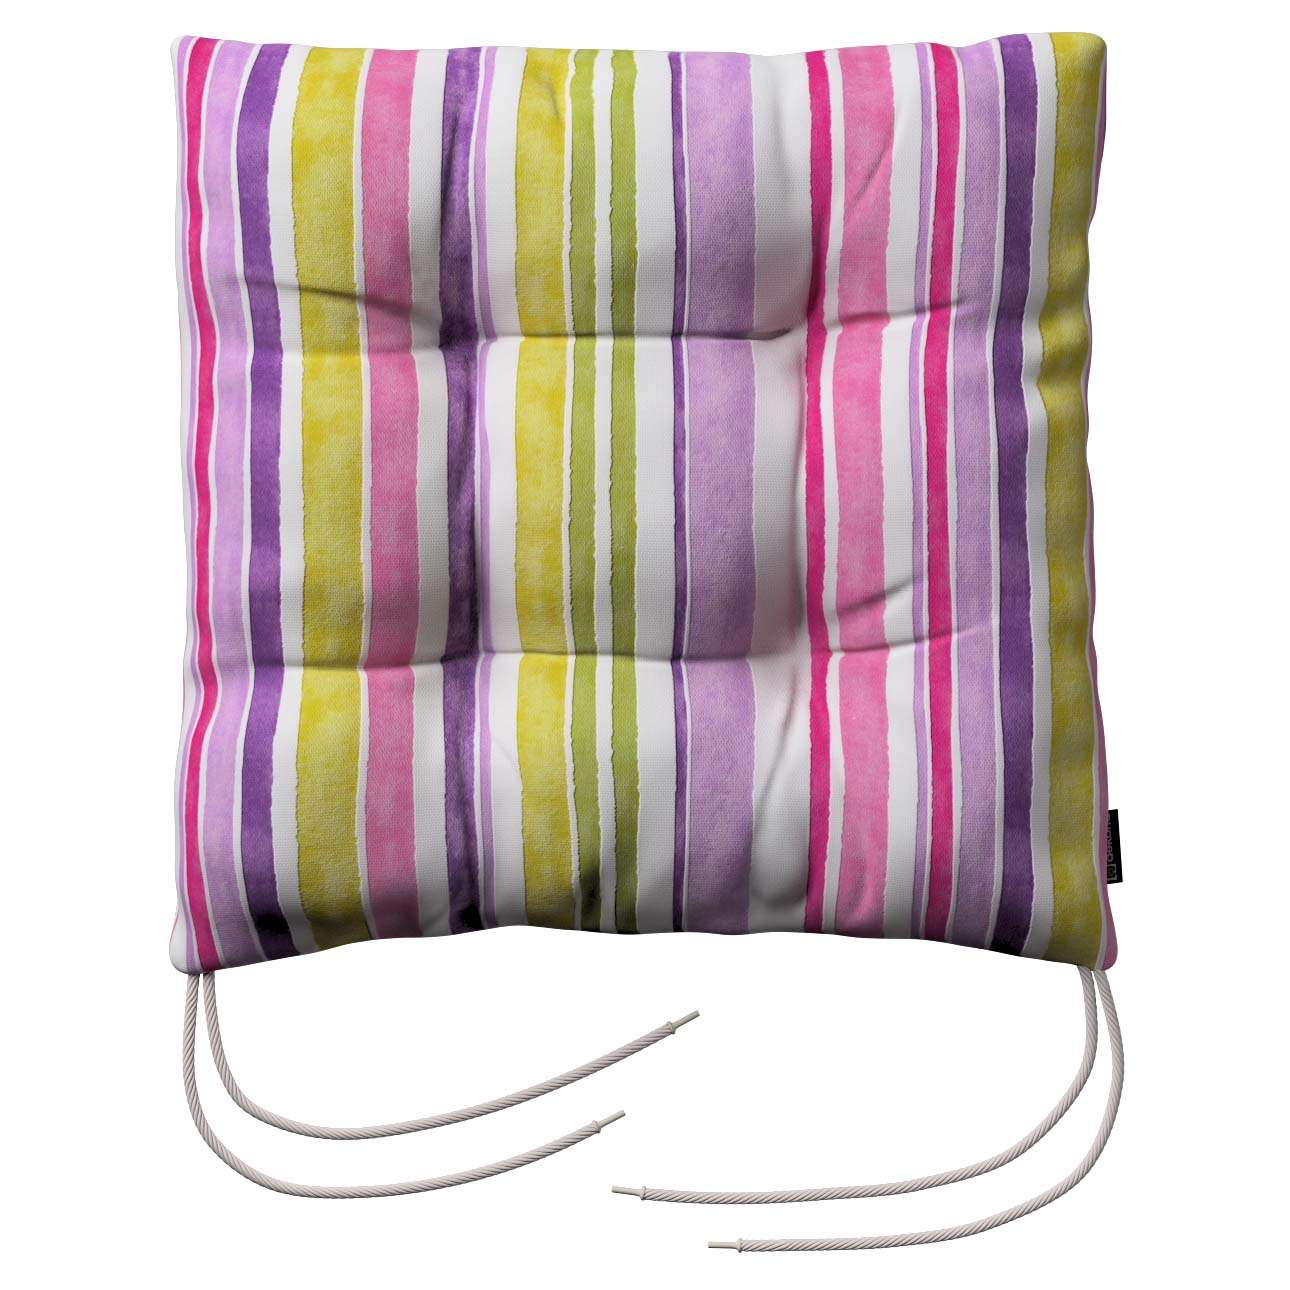 Jack seat pad with ties in collection Monet, fabric: 140-01